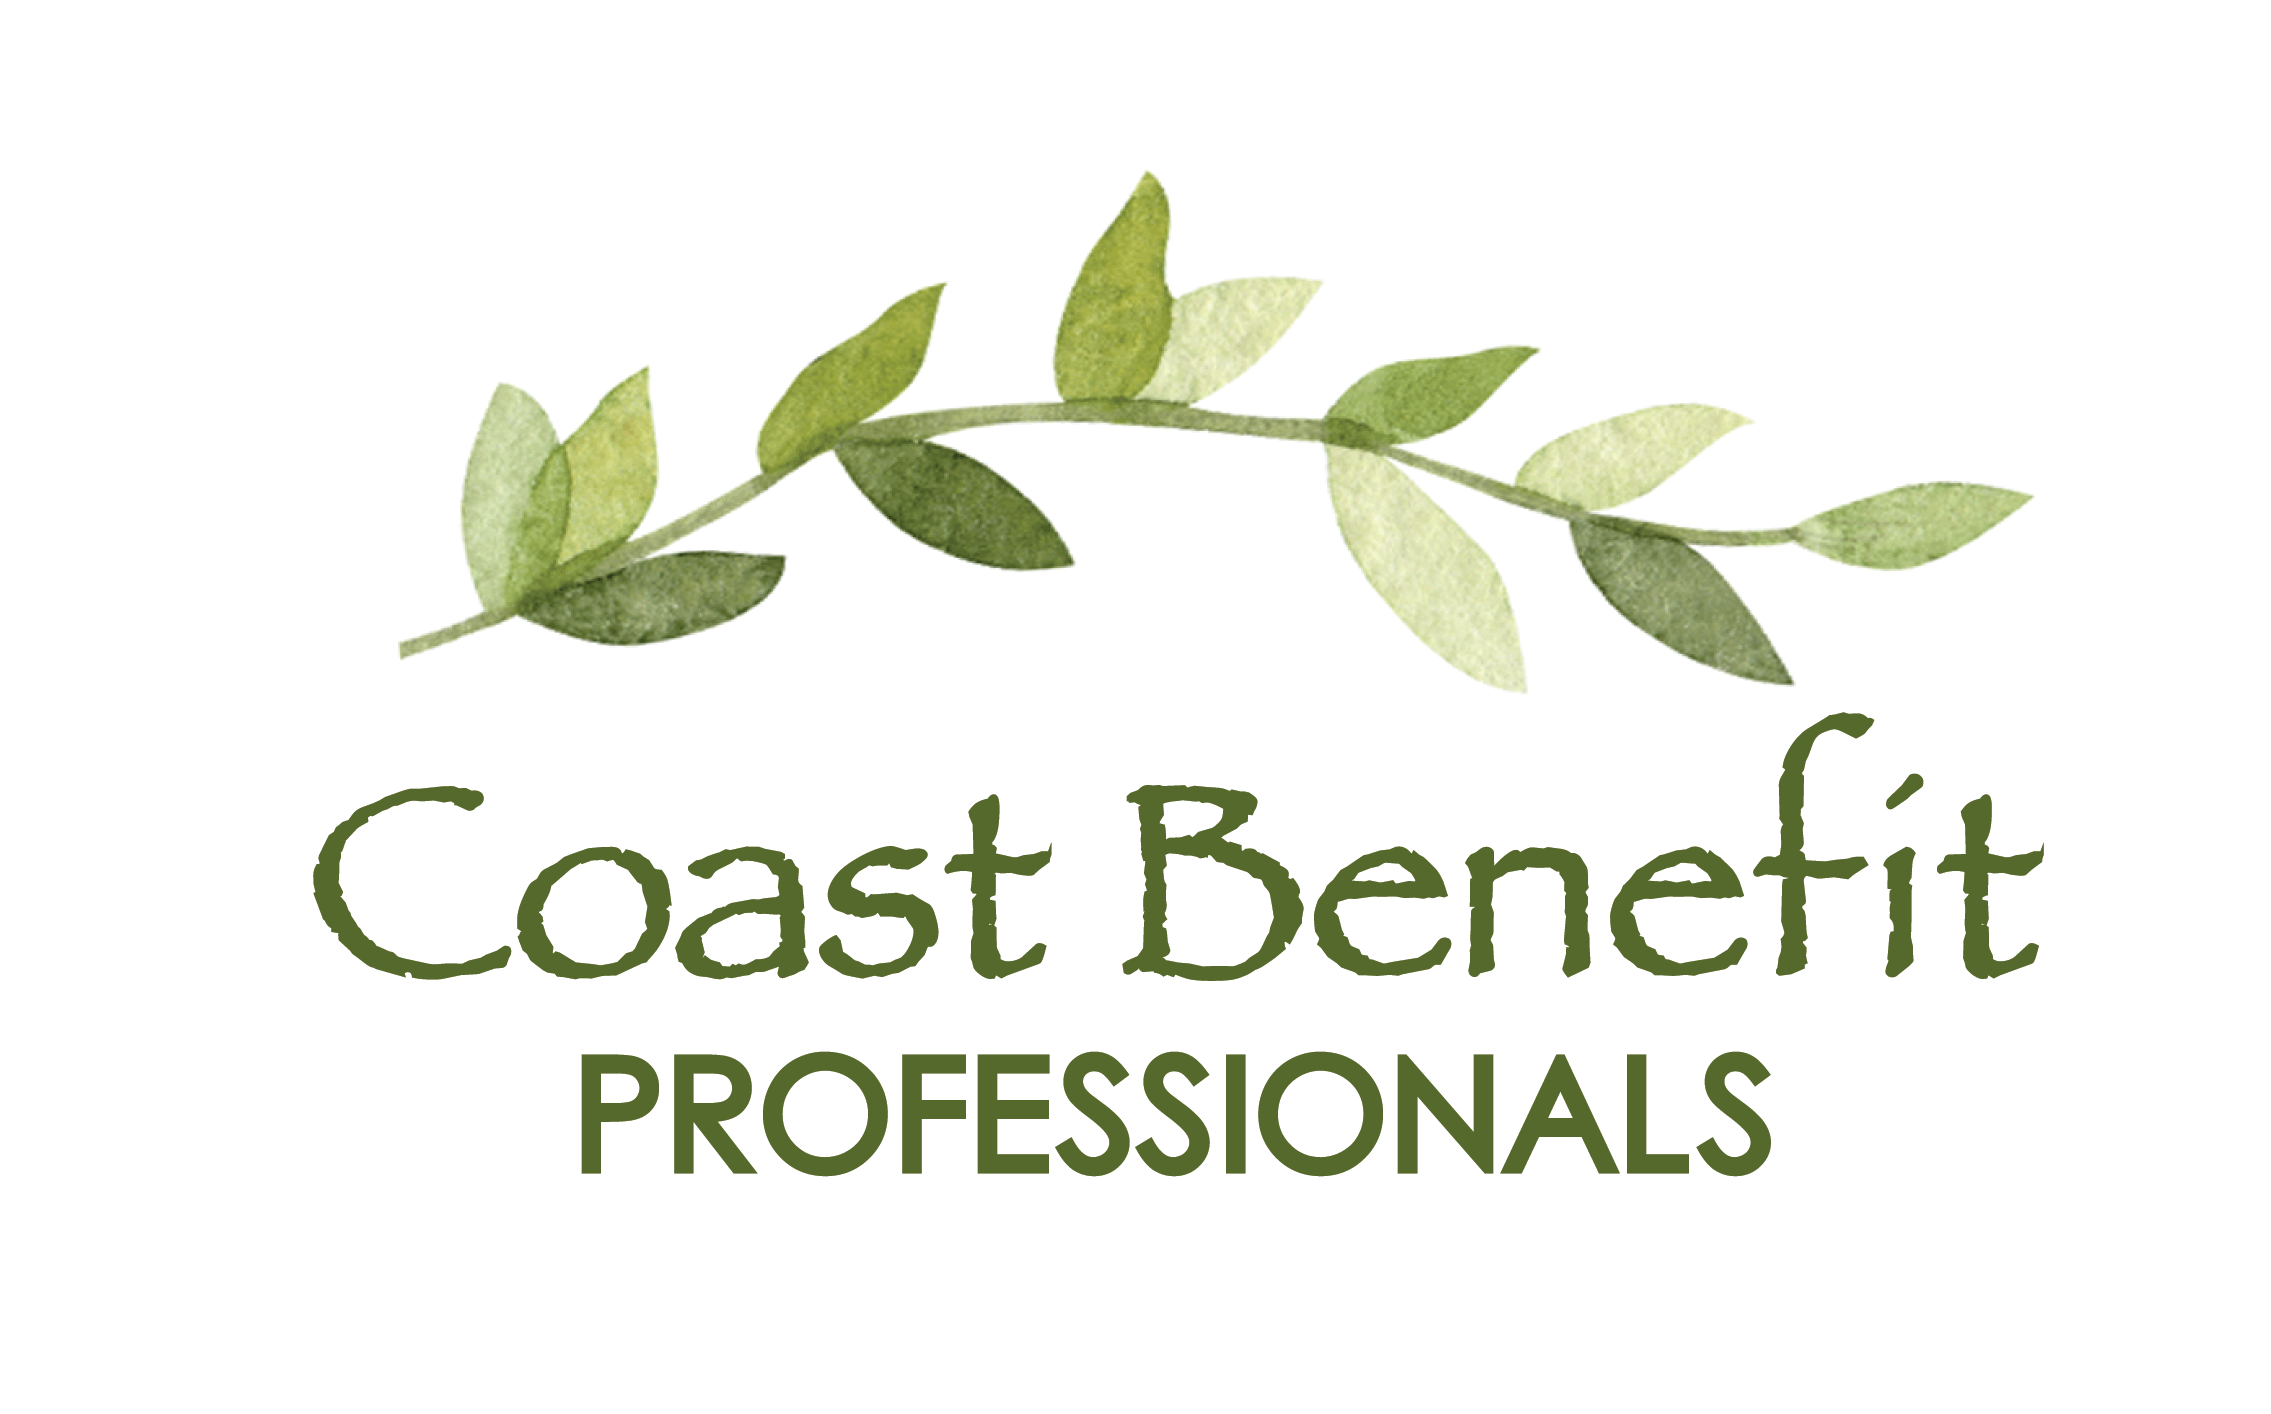 Coast Benefit Professionals logo design by Jaimee Designs